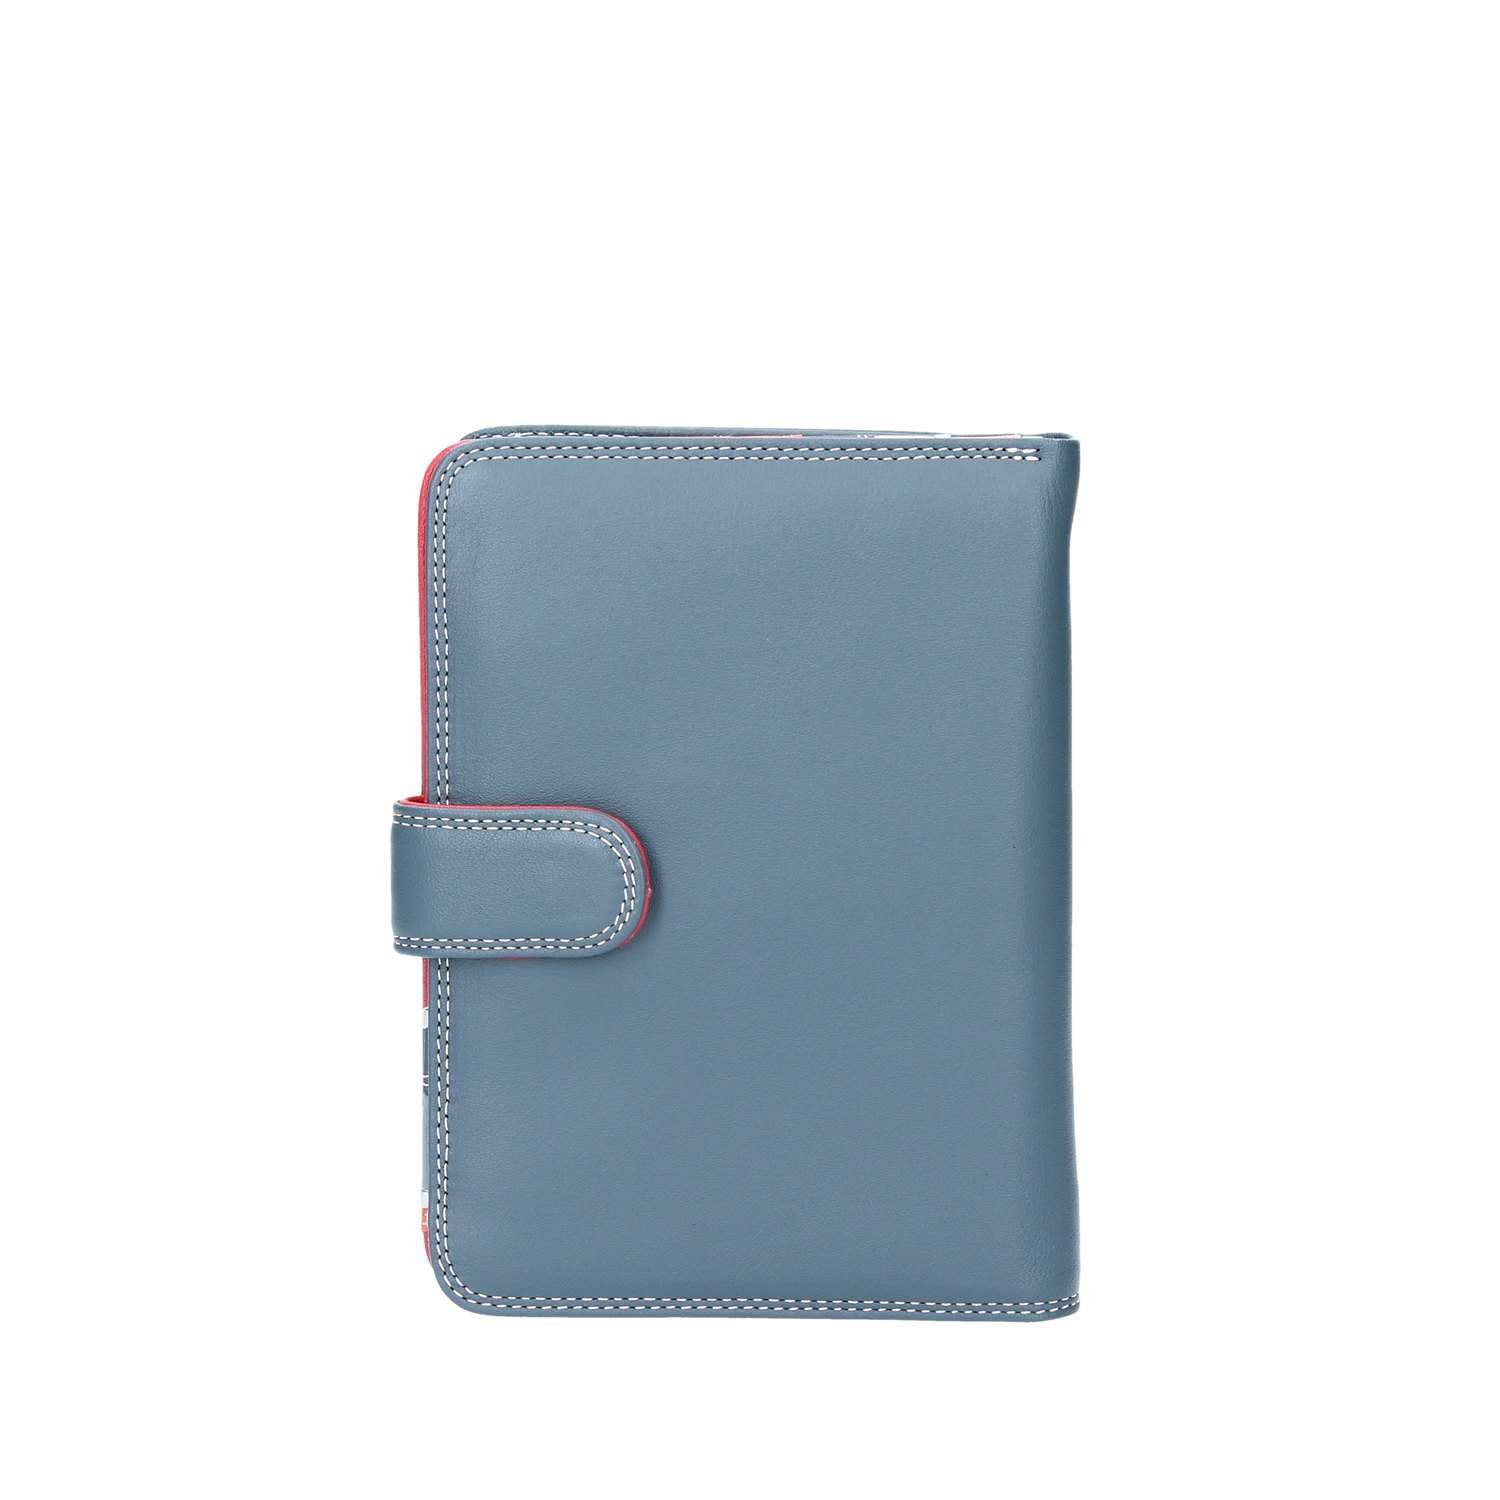 Mywalit Leather Purse Wallet Style 229